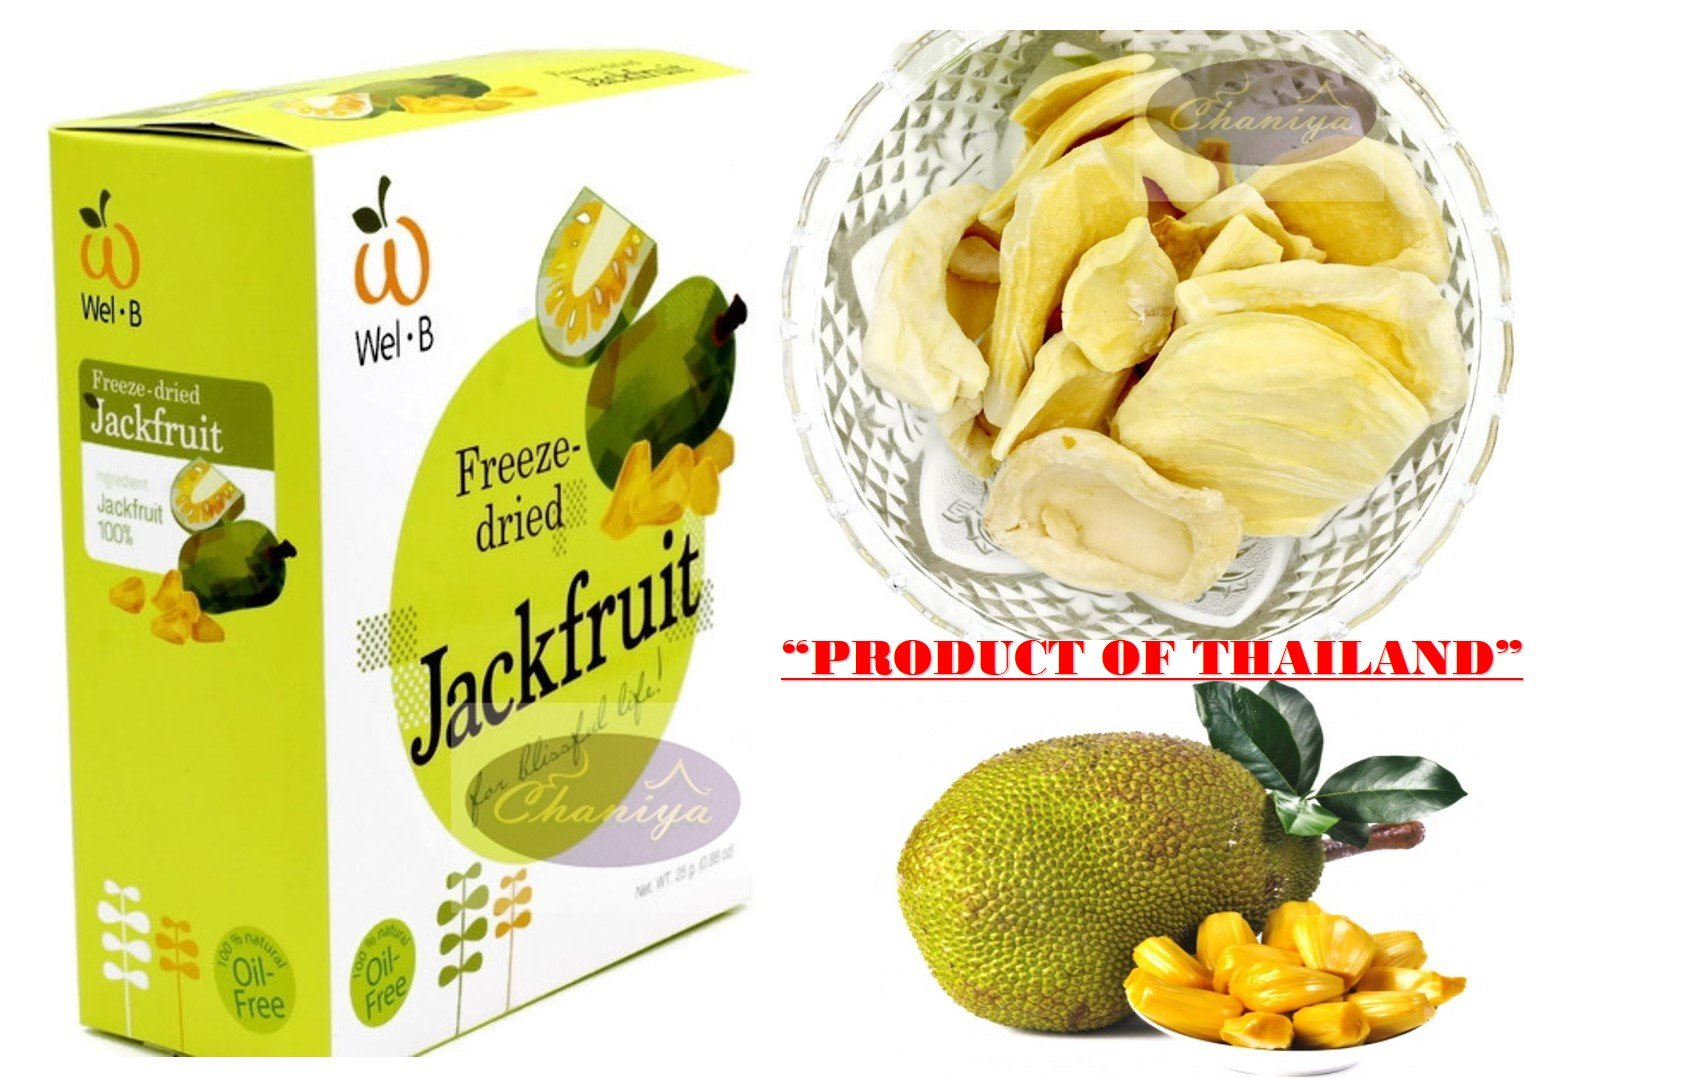 Crispy freeze dried fruit Jackfruit Healthy Snack 100% all Natural Oil-Free 1 Box 25 g. (0.88 Oz)